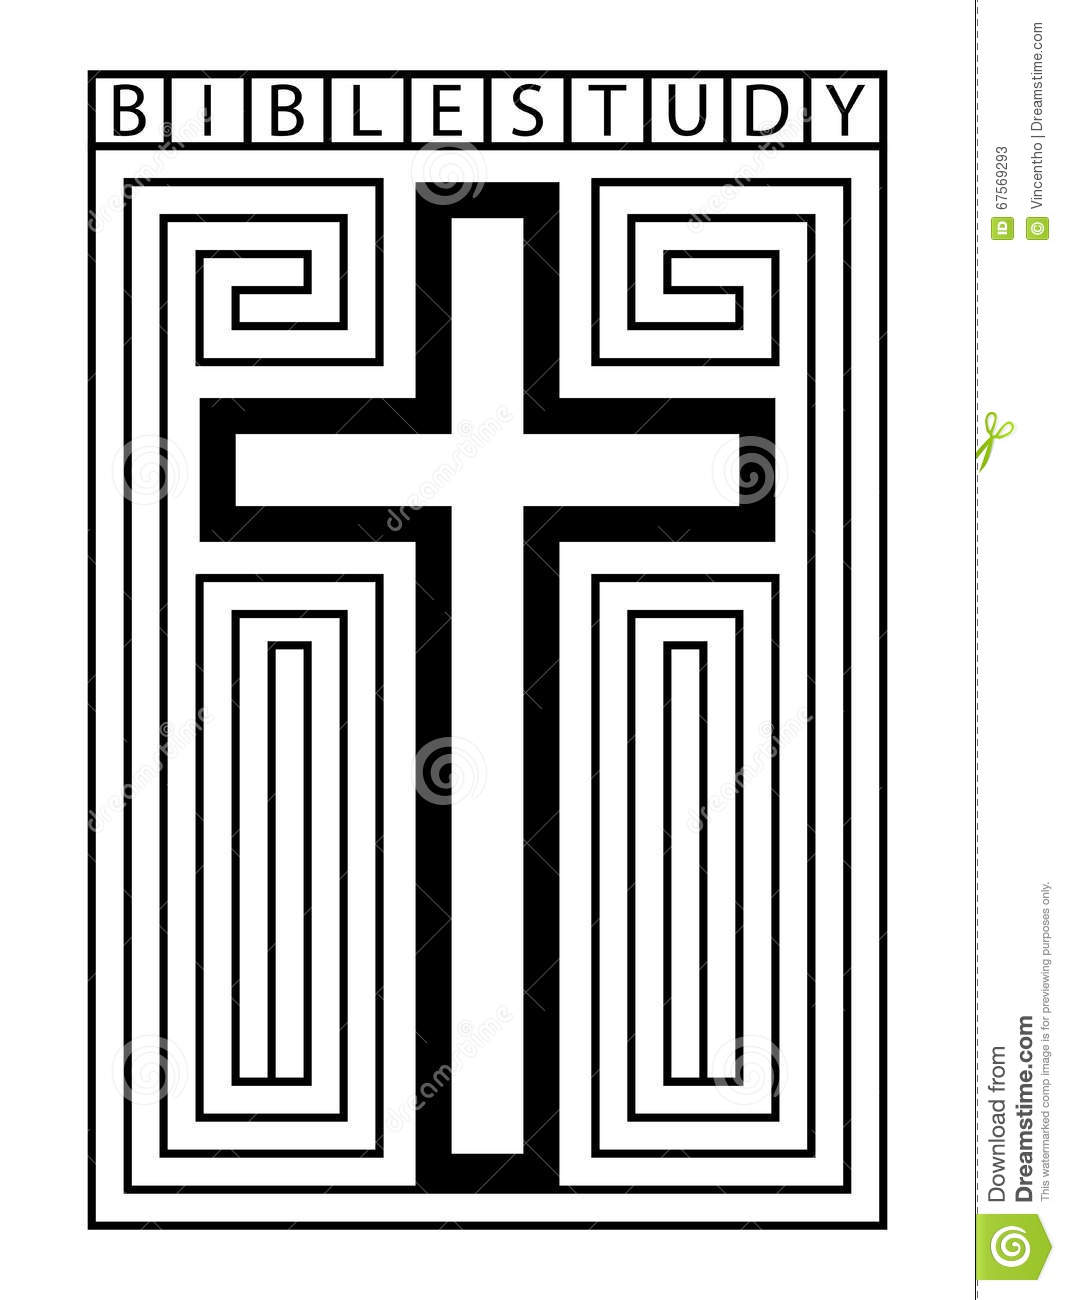 Bible Study Cross Maze Illustration Stock Vector